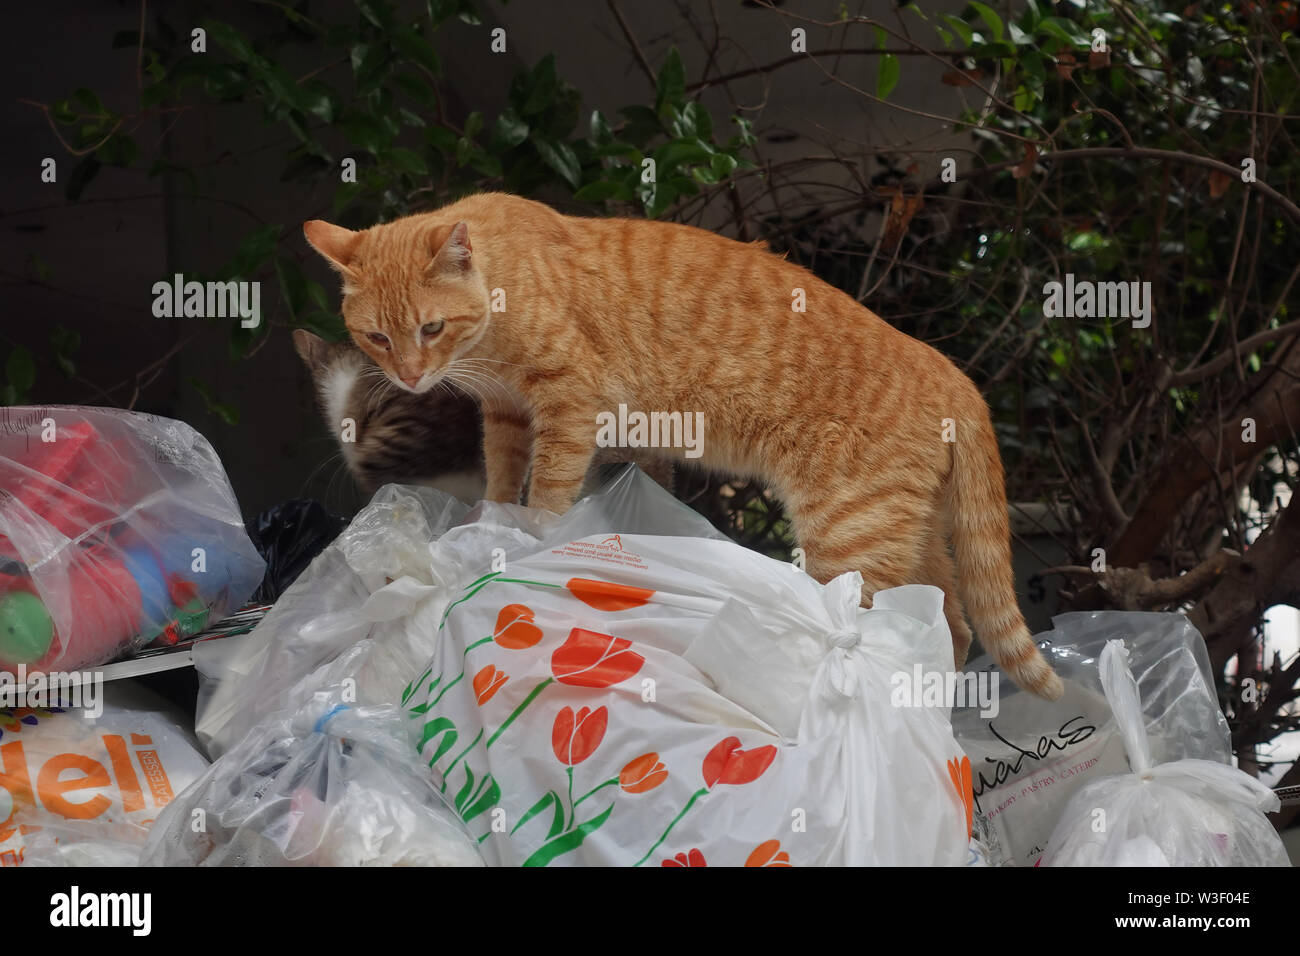 ATHENS, GREECE - MAY 5, 2019: Stray cats looking for food in garbage can full of trash in plastic bags. - Stock Image